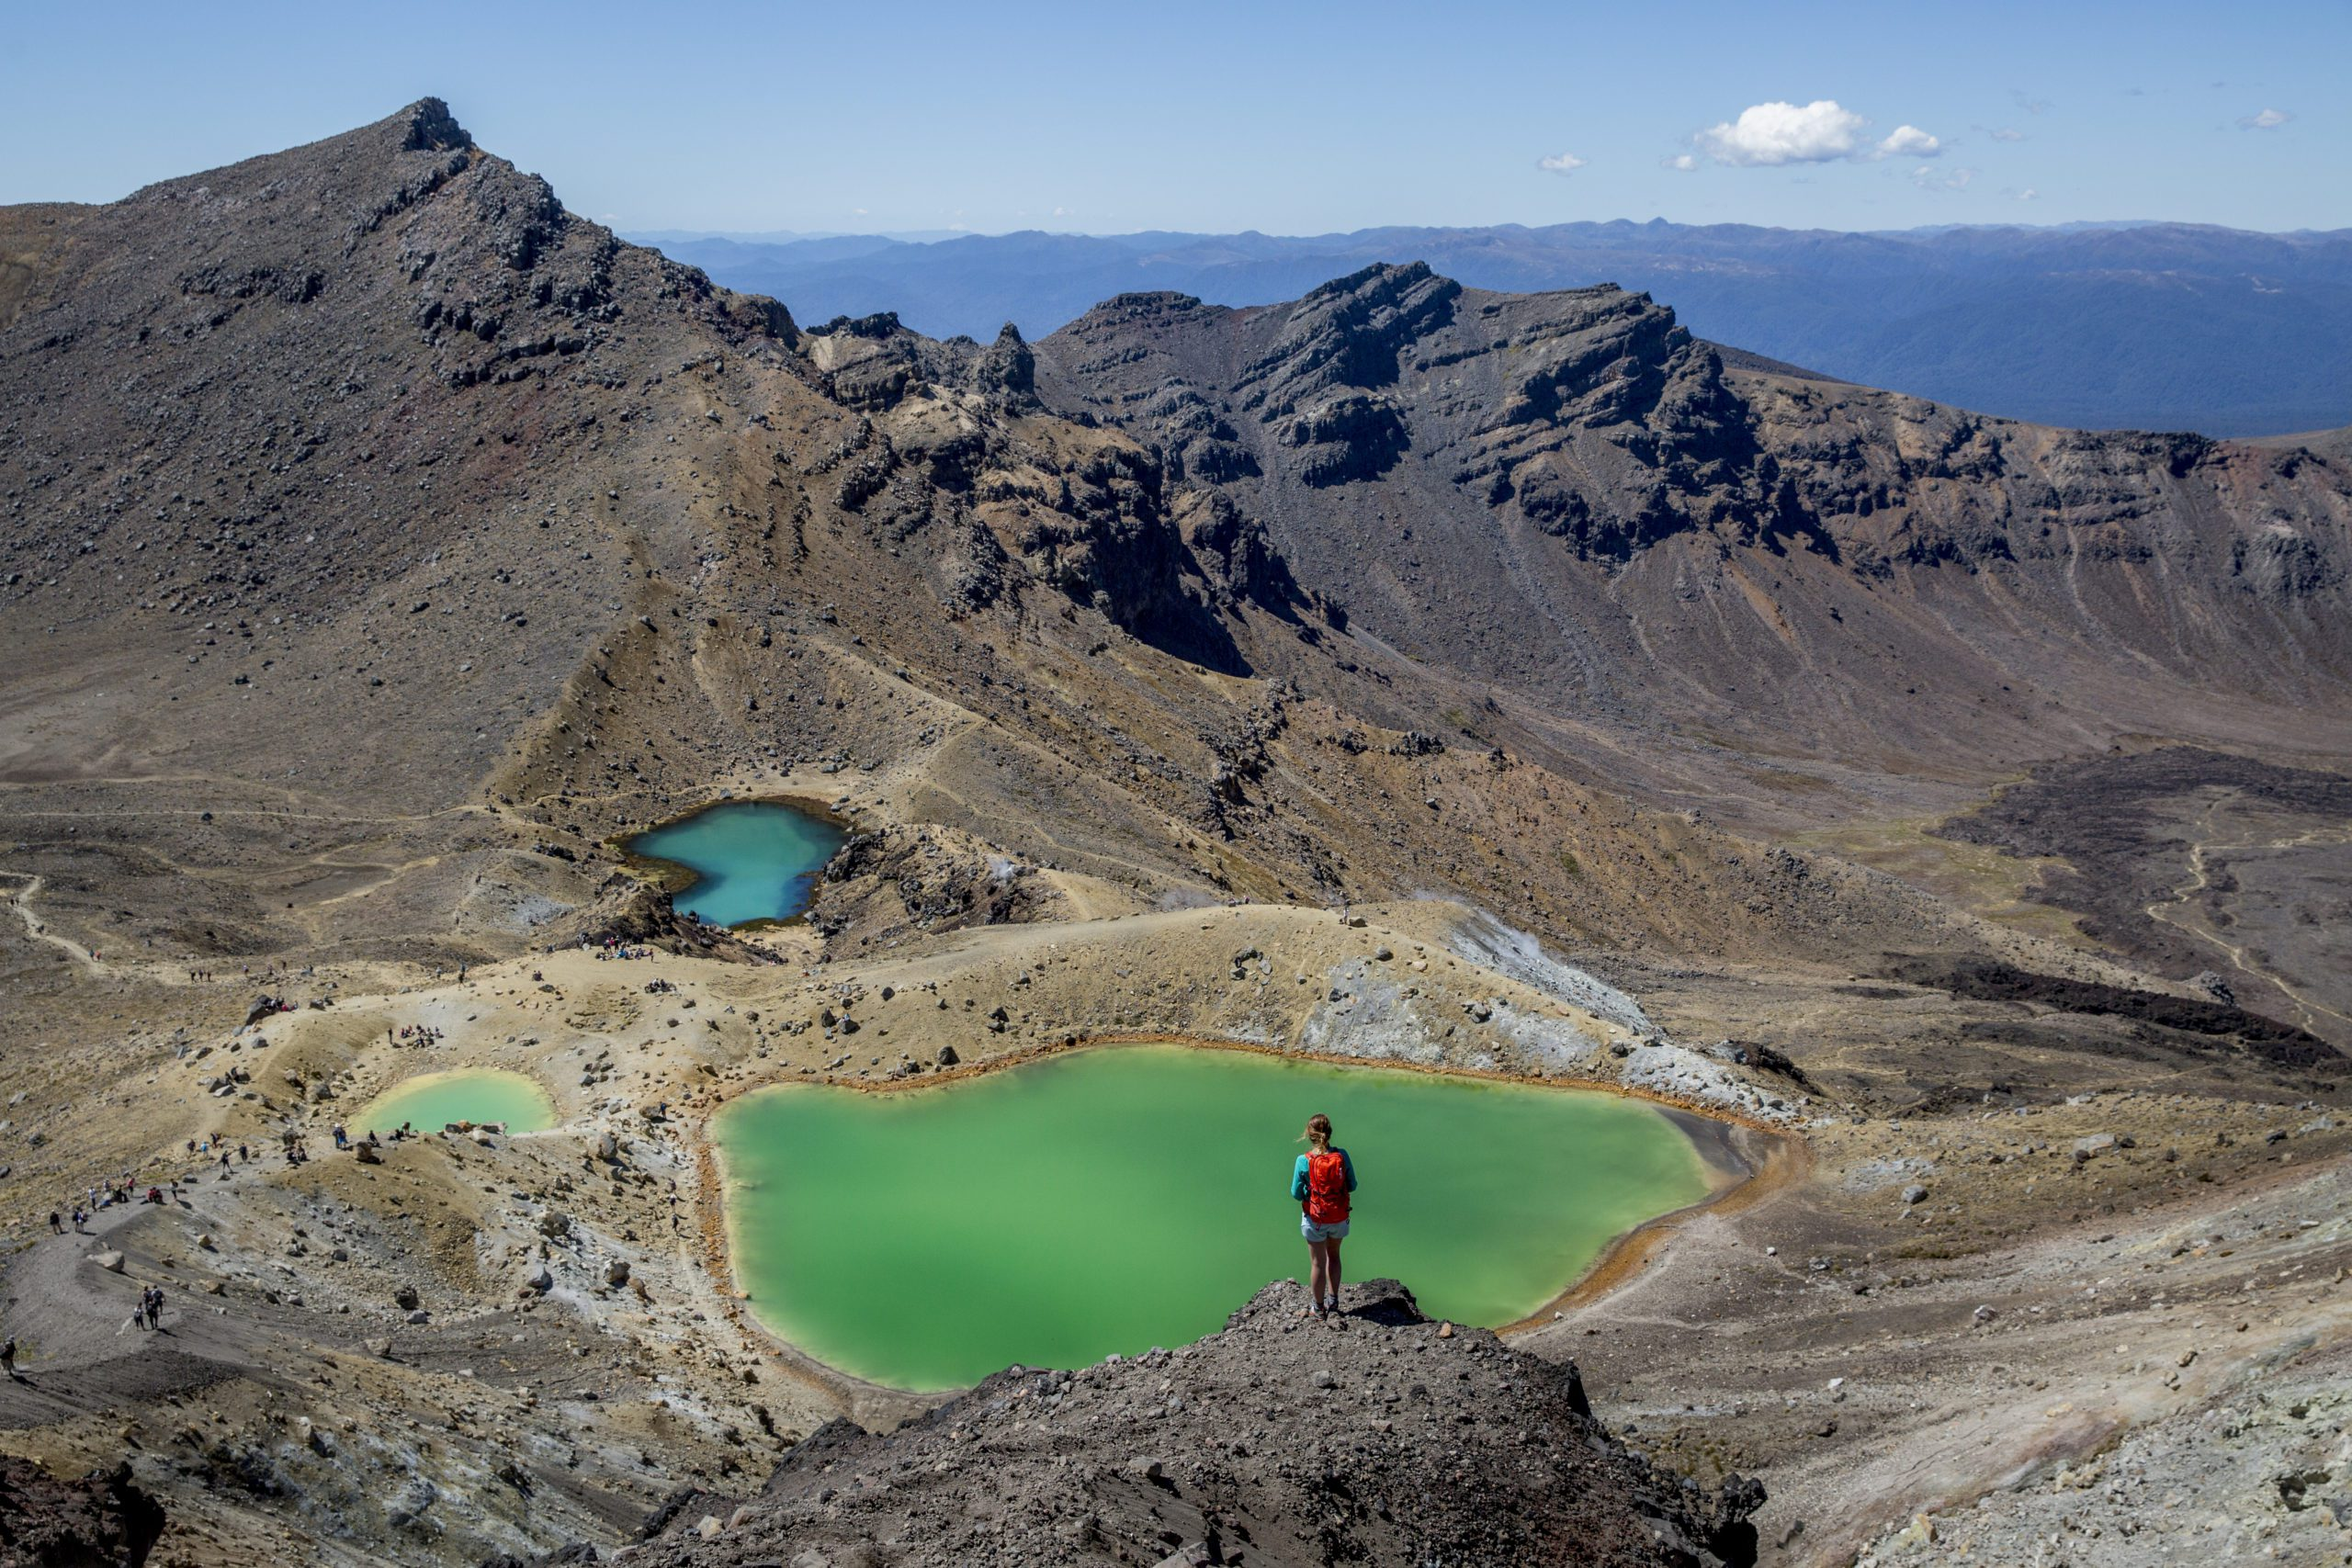 A hiker stops to admire the green lake on the Tongariro Alpine Crossing